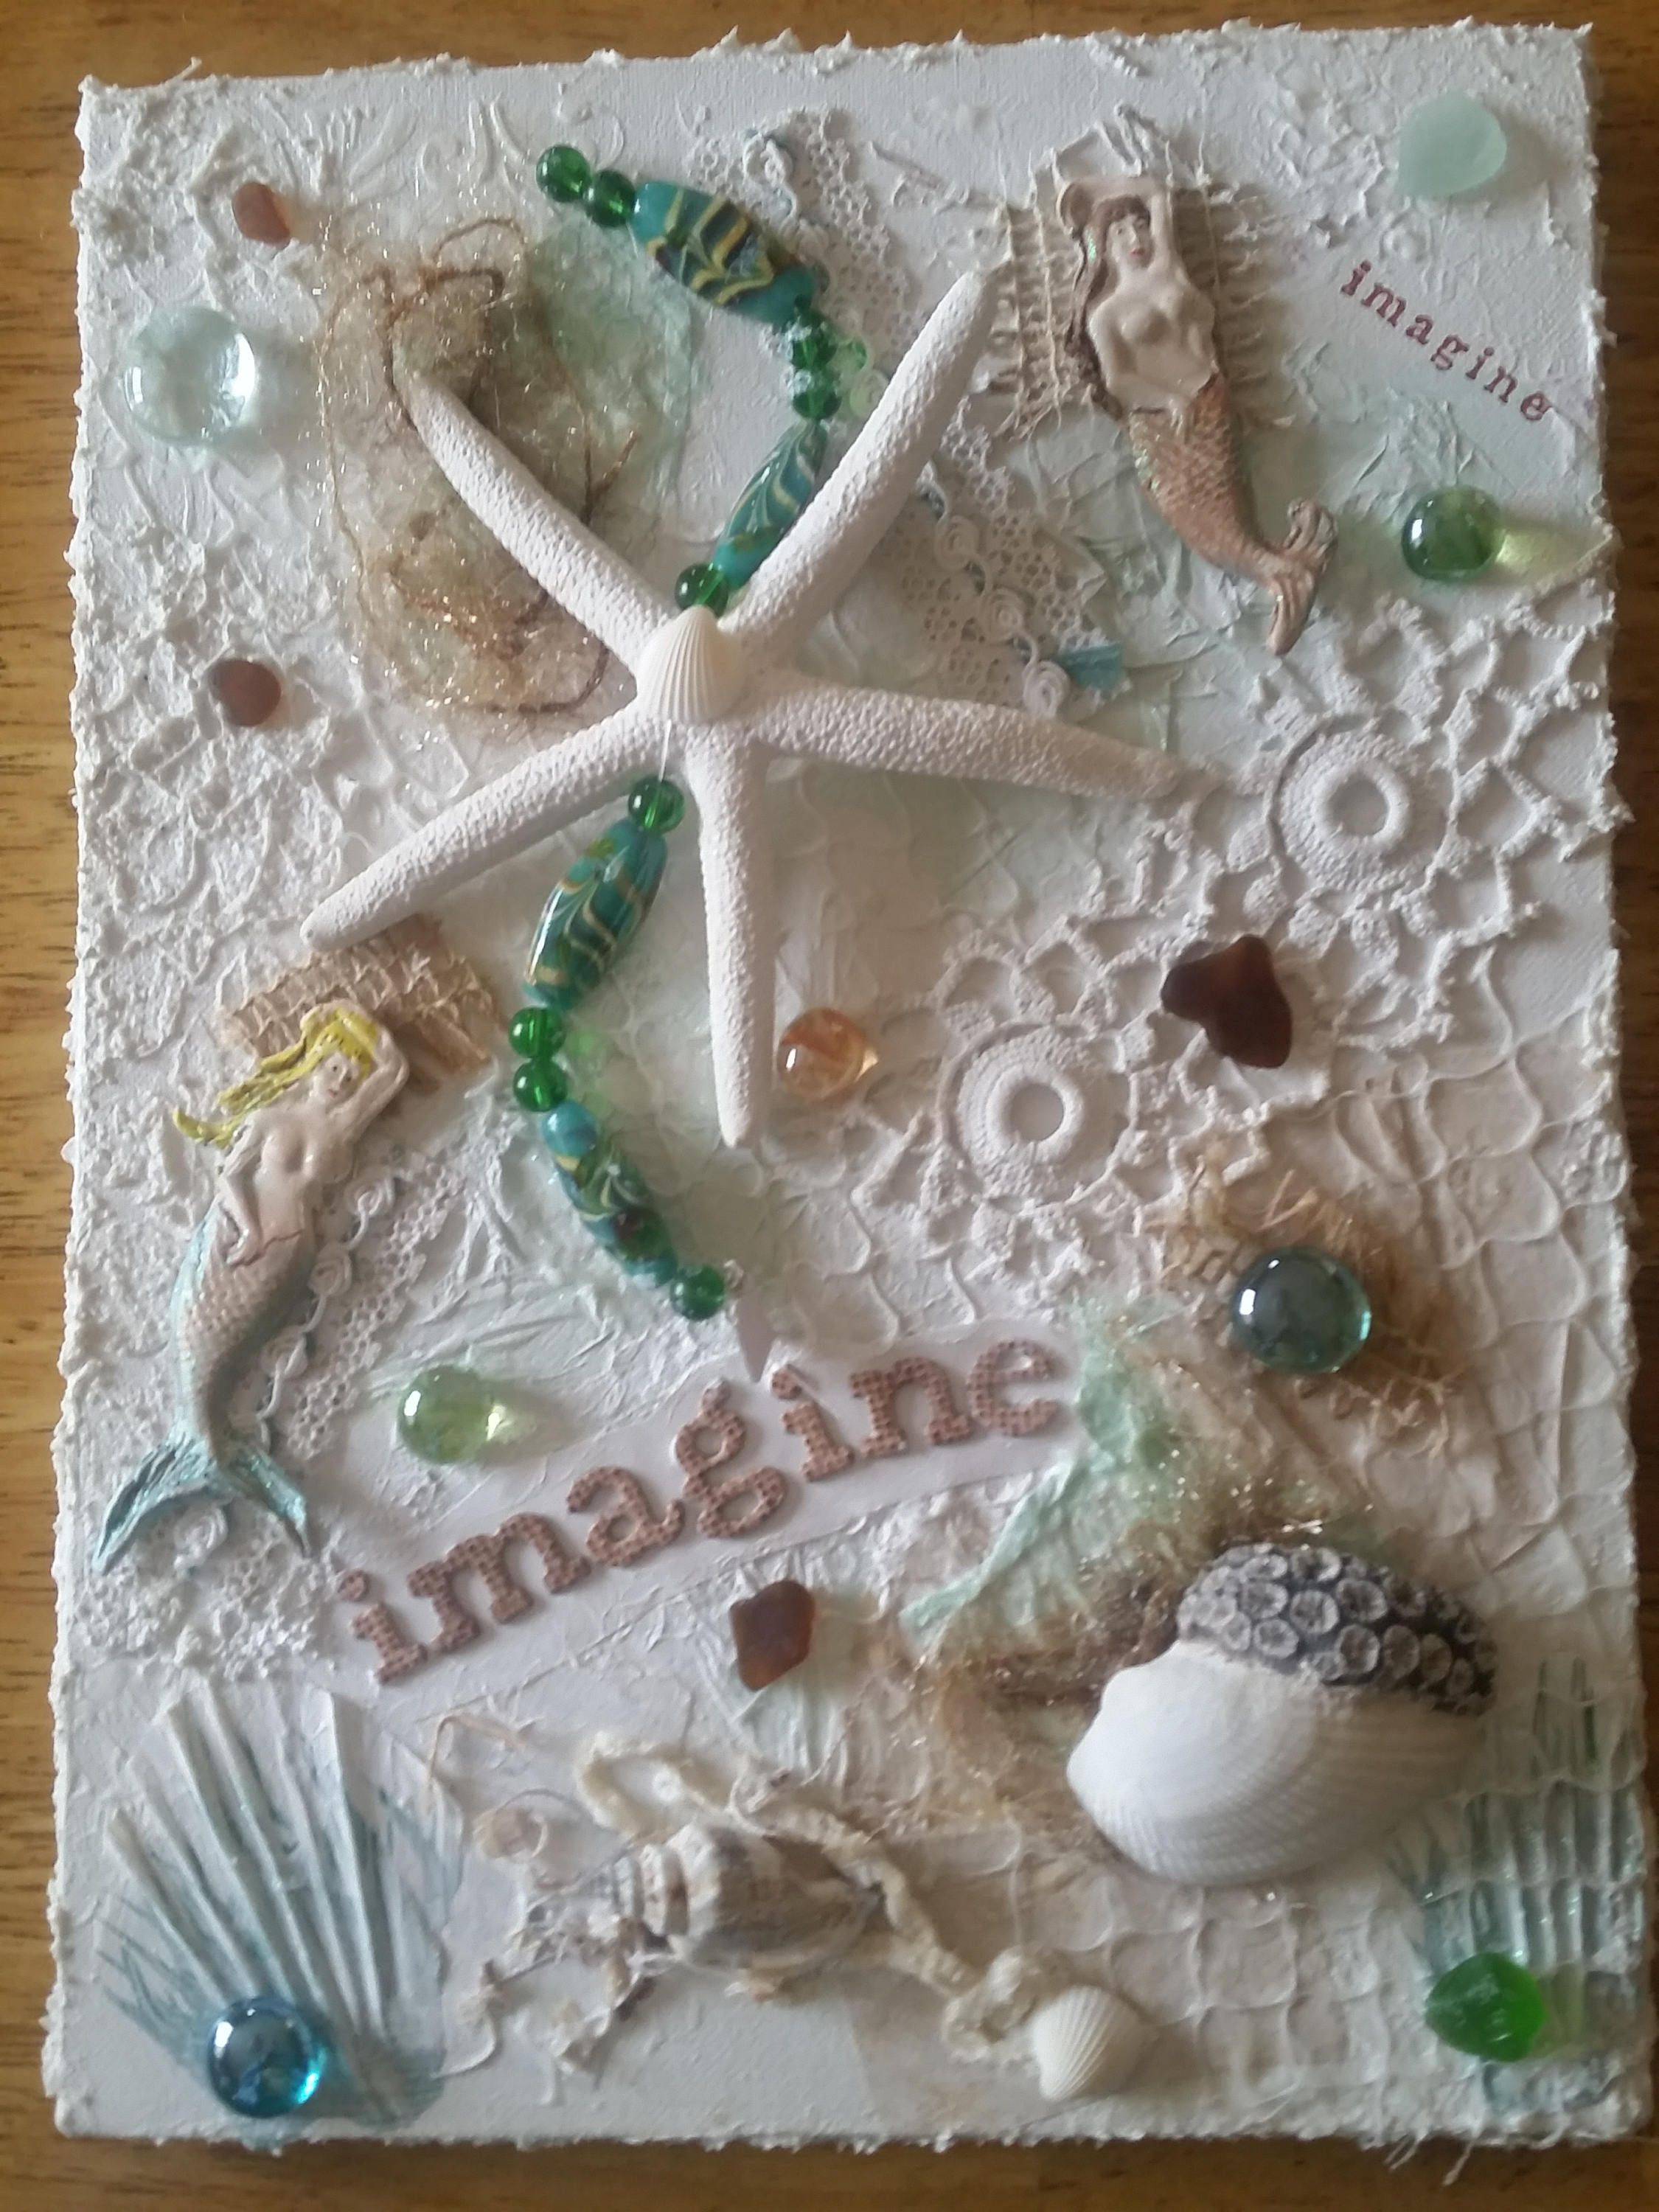 Altered Art  Mixed Media Sea Themed Wall Art with Sea Glass and Polymer Clay Mermaids by ArteDiMareSeaArt on Etsy